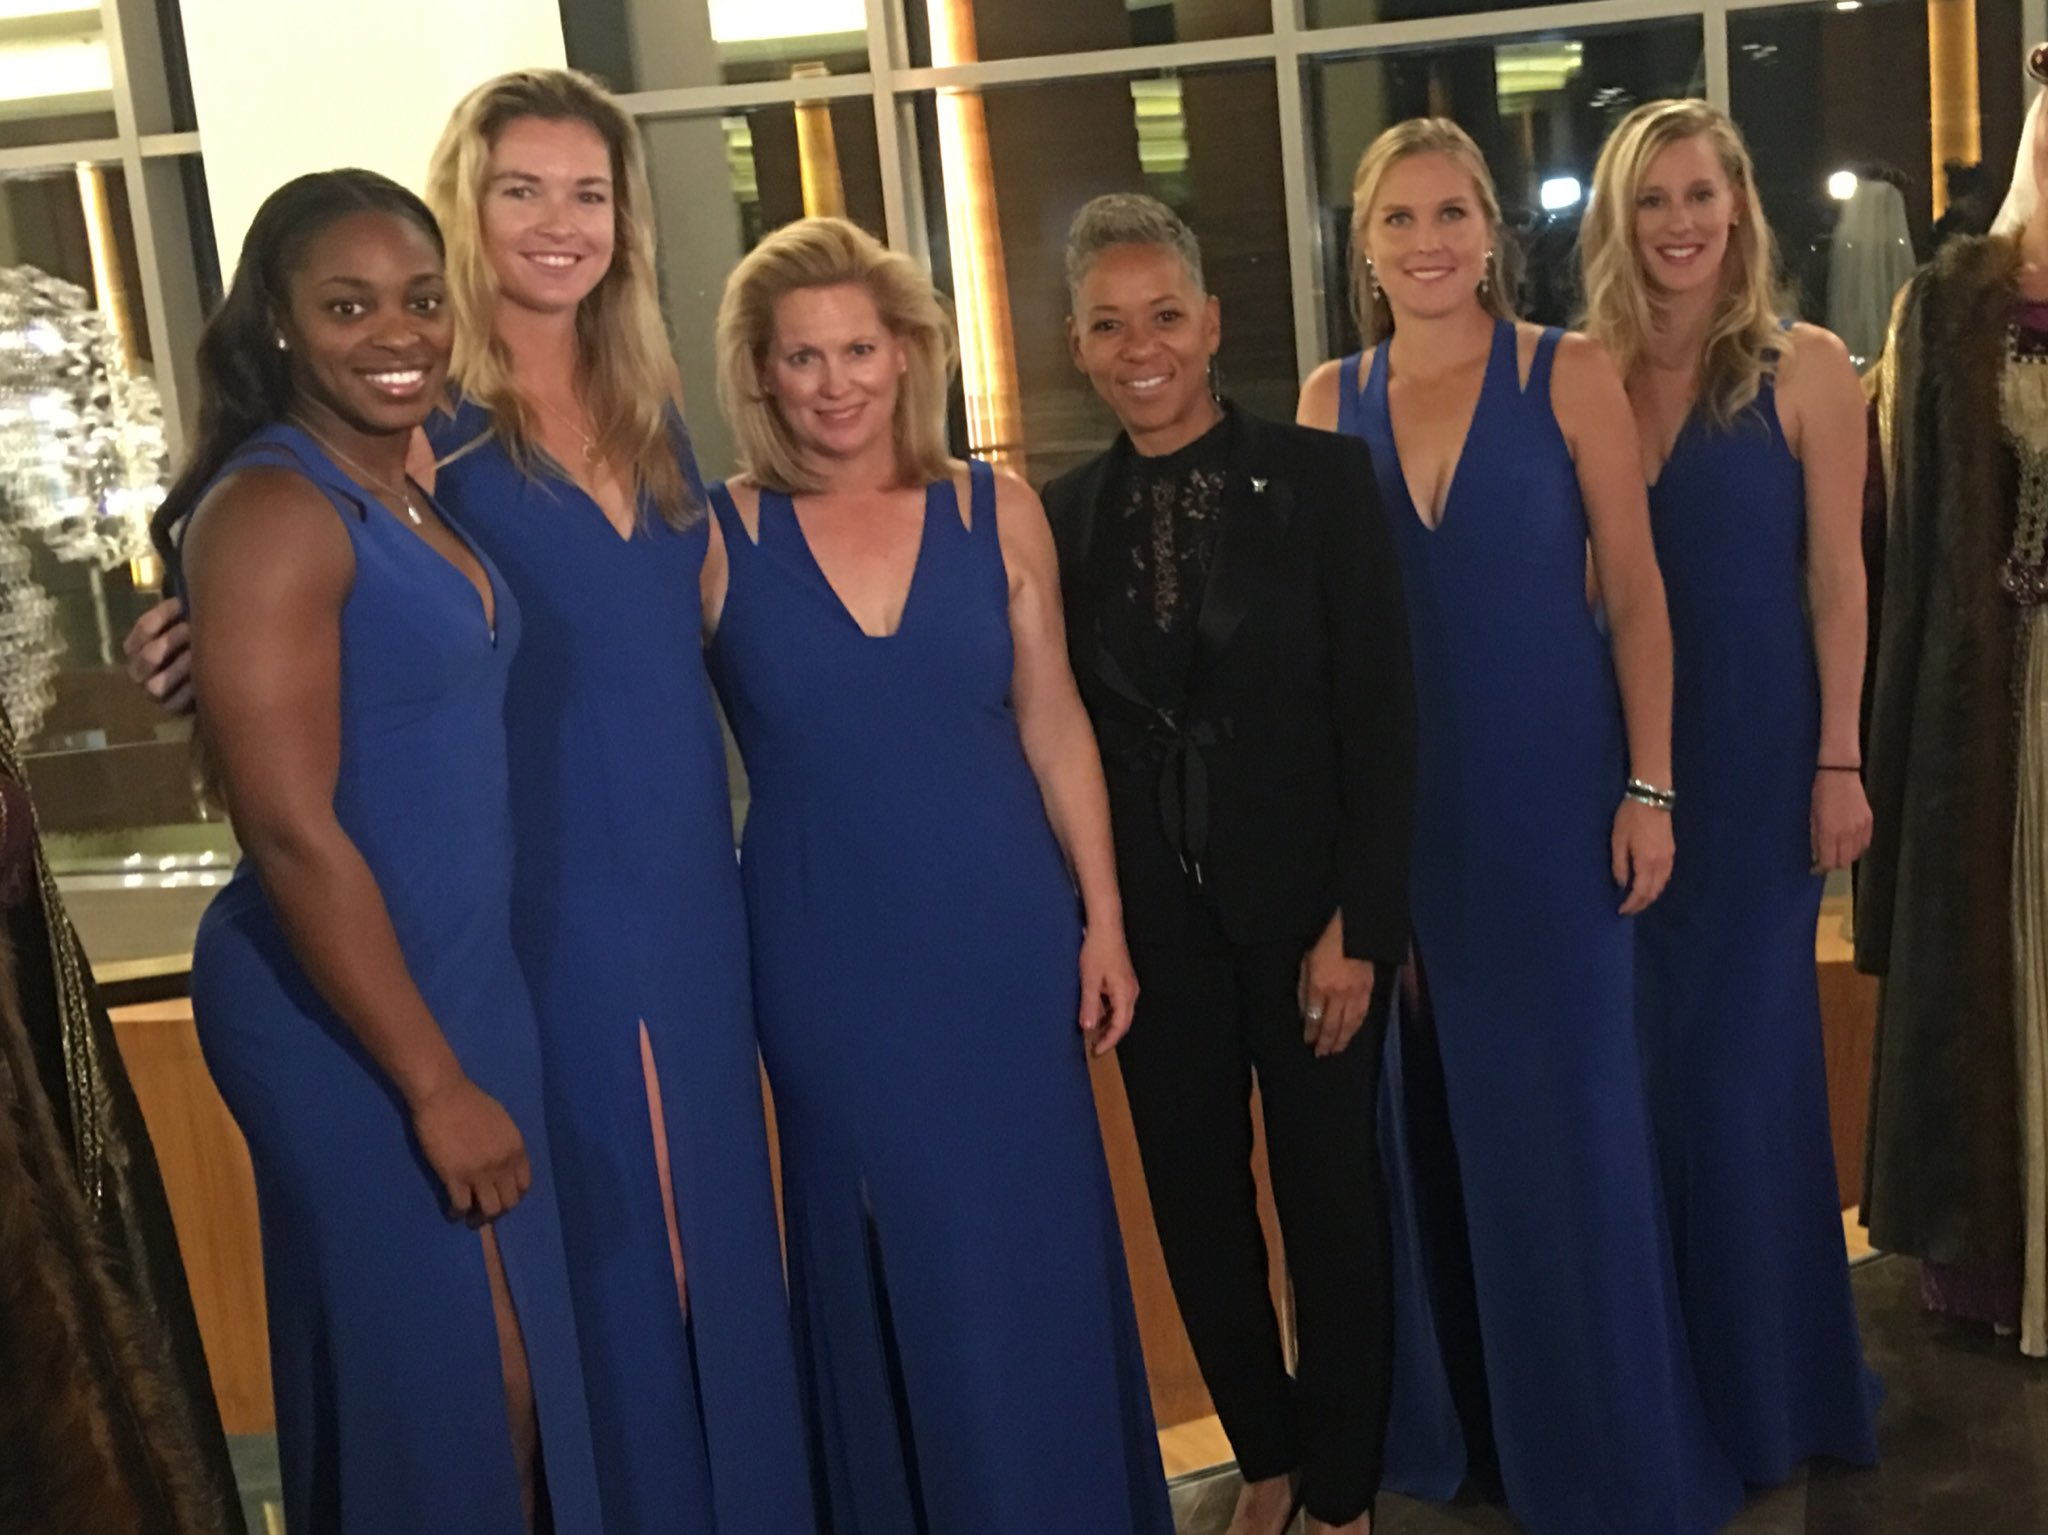 Fed Cup 2017 - Page 6 DONB1MjW4AEX2IM